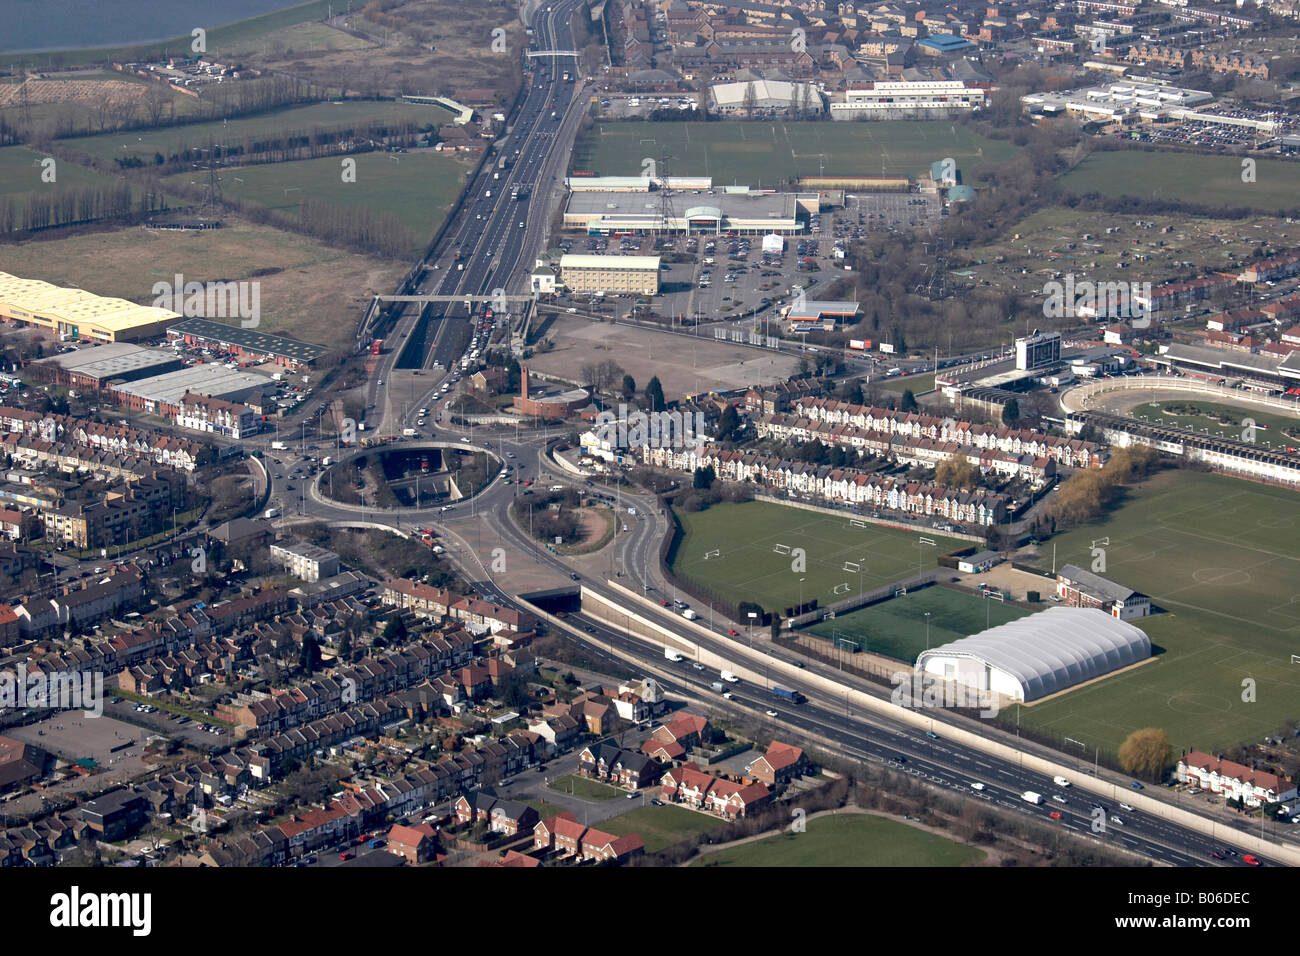 Aerial view north west of Crooked Billet roundabout A406 Waltham Forest London E17 E4 England UK High level oblique - Stock Image